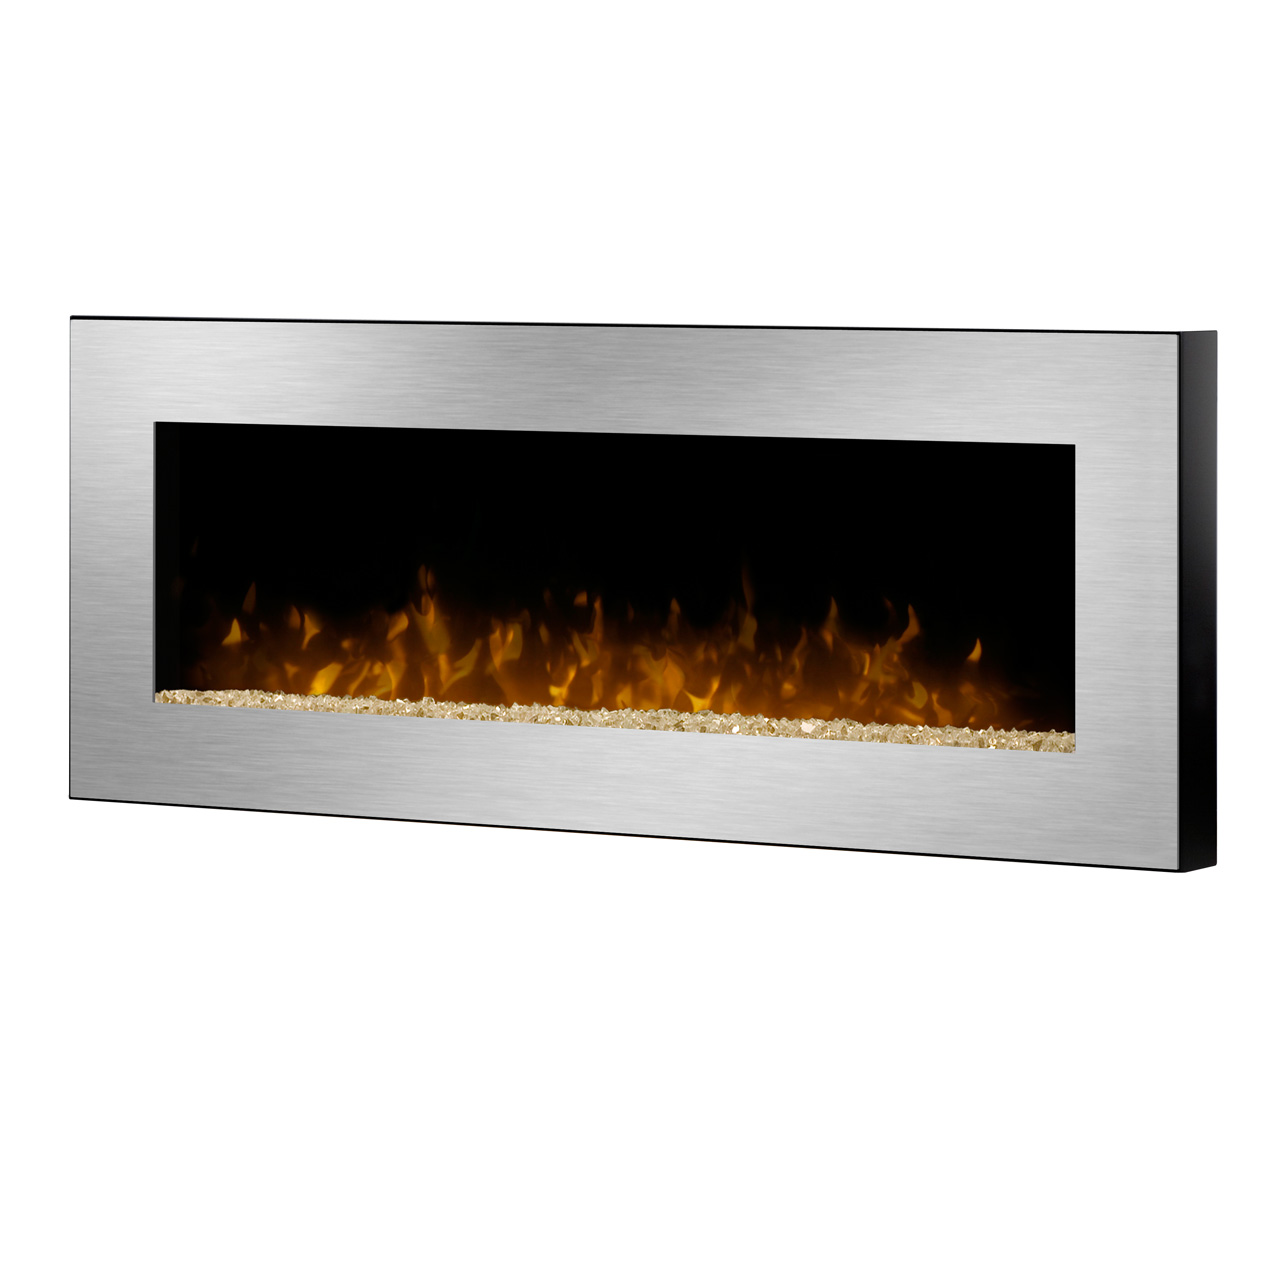 Dwf1207sb Dimplex Dwf1207sb Electric Fireplace